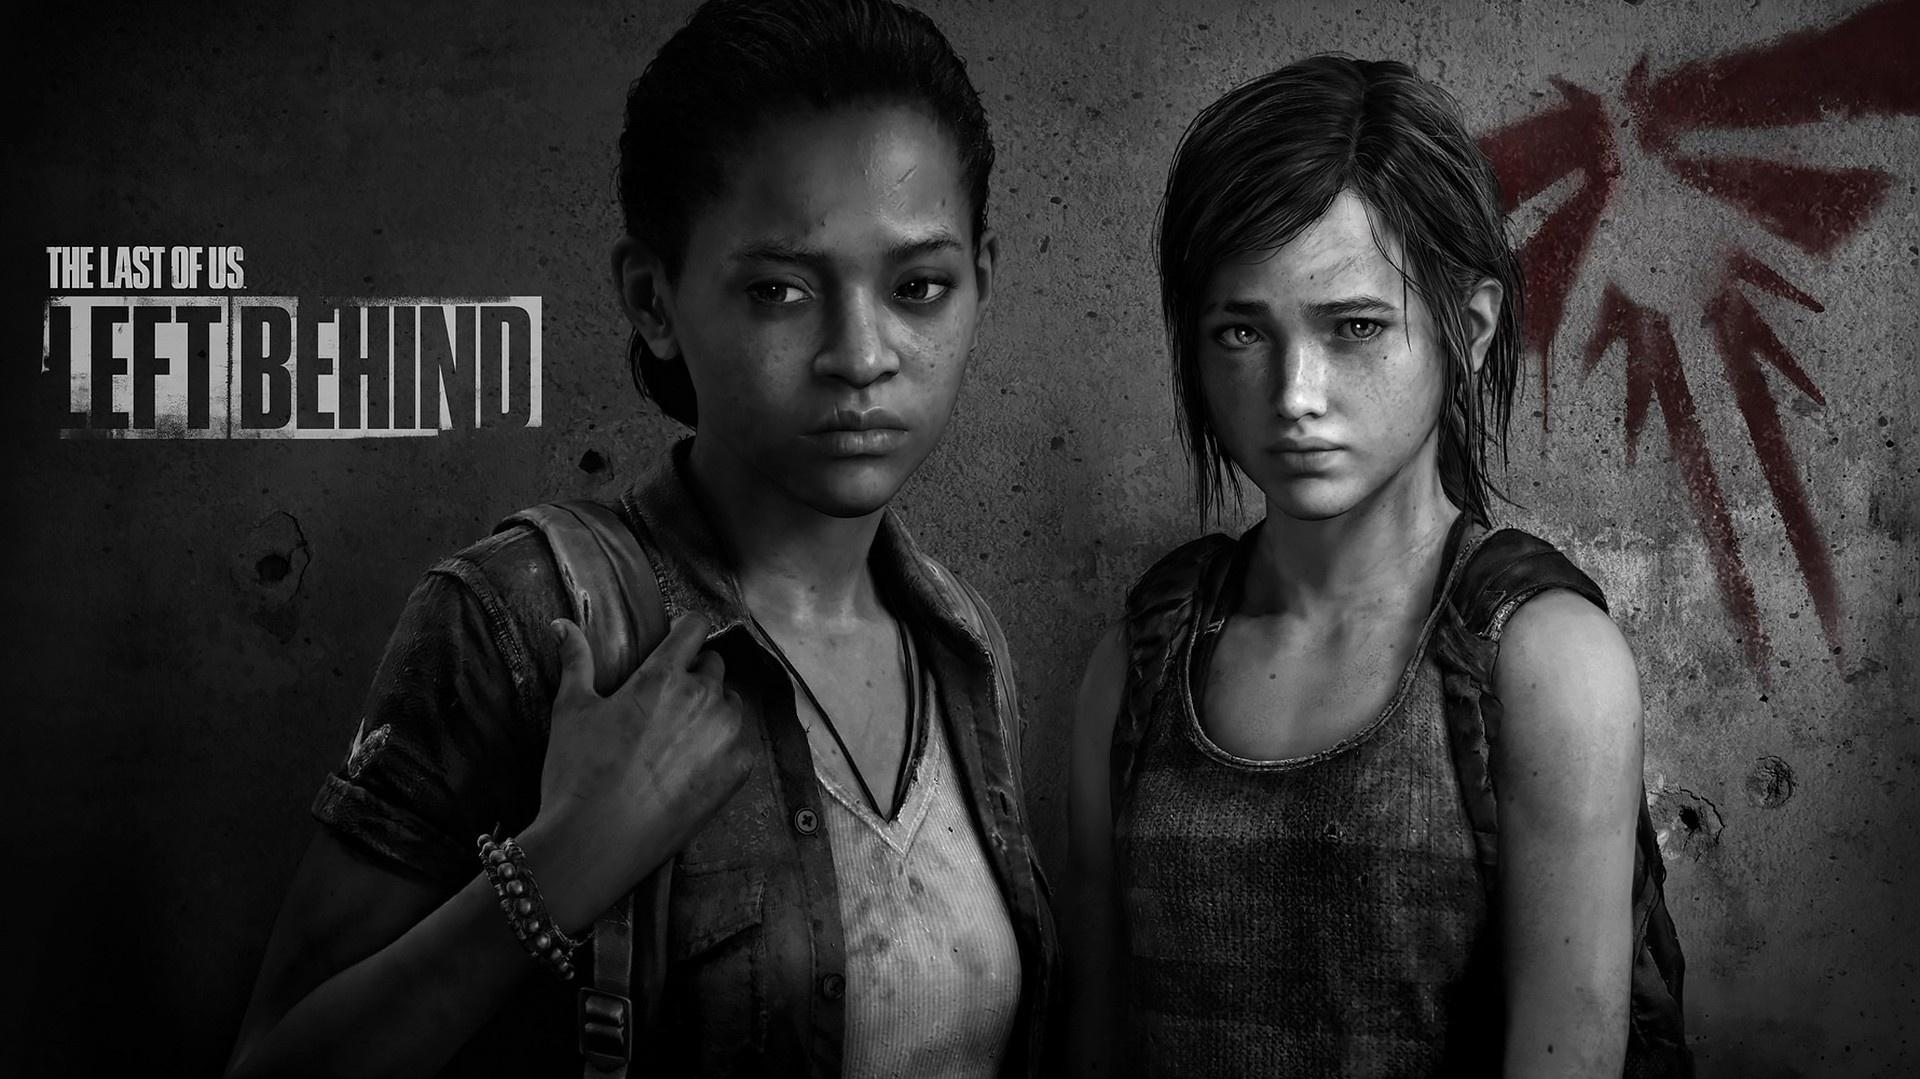 The Last of Us Left Behind - Launch Trailer